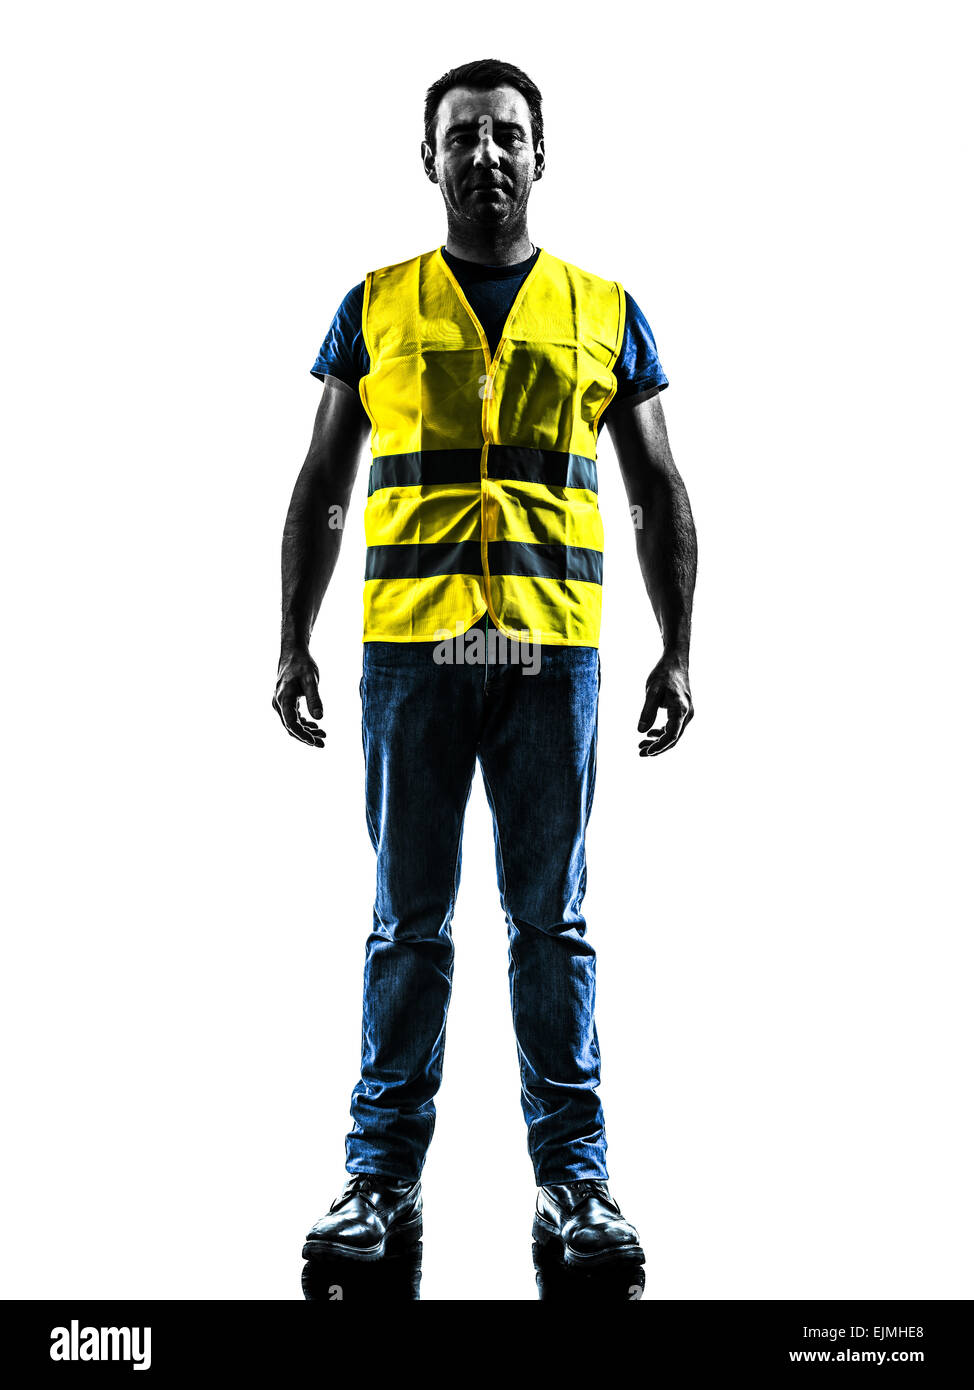 one man standing in yellow safety vest silhouette isolated in white background - Stock Image